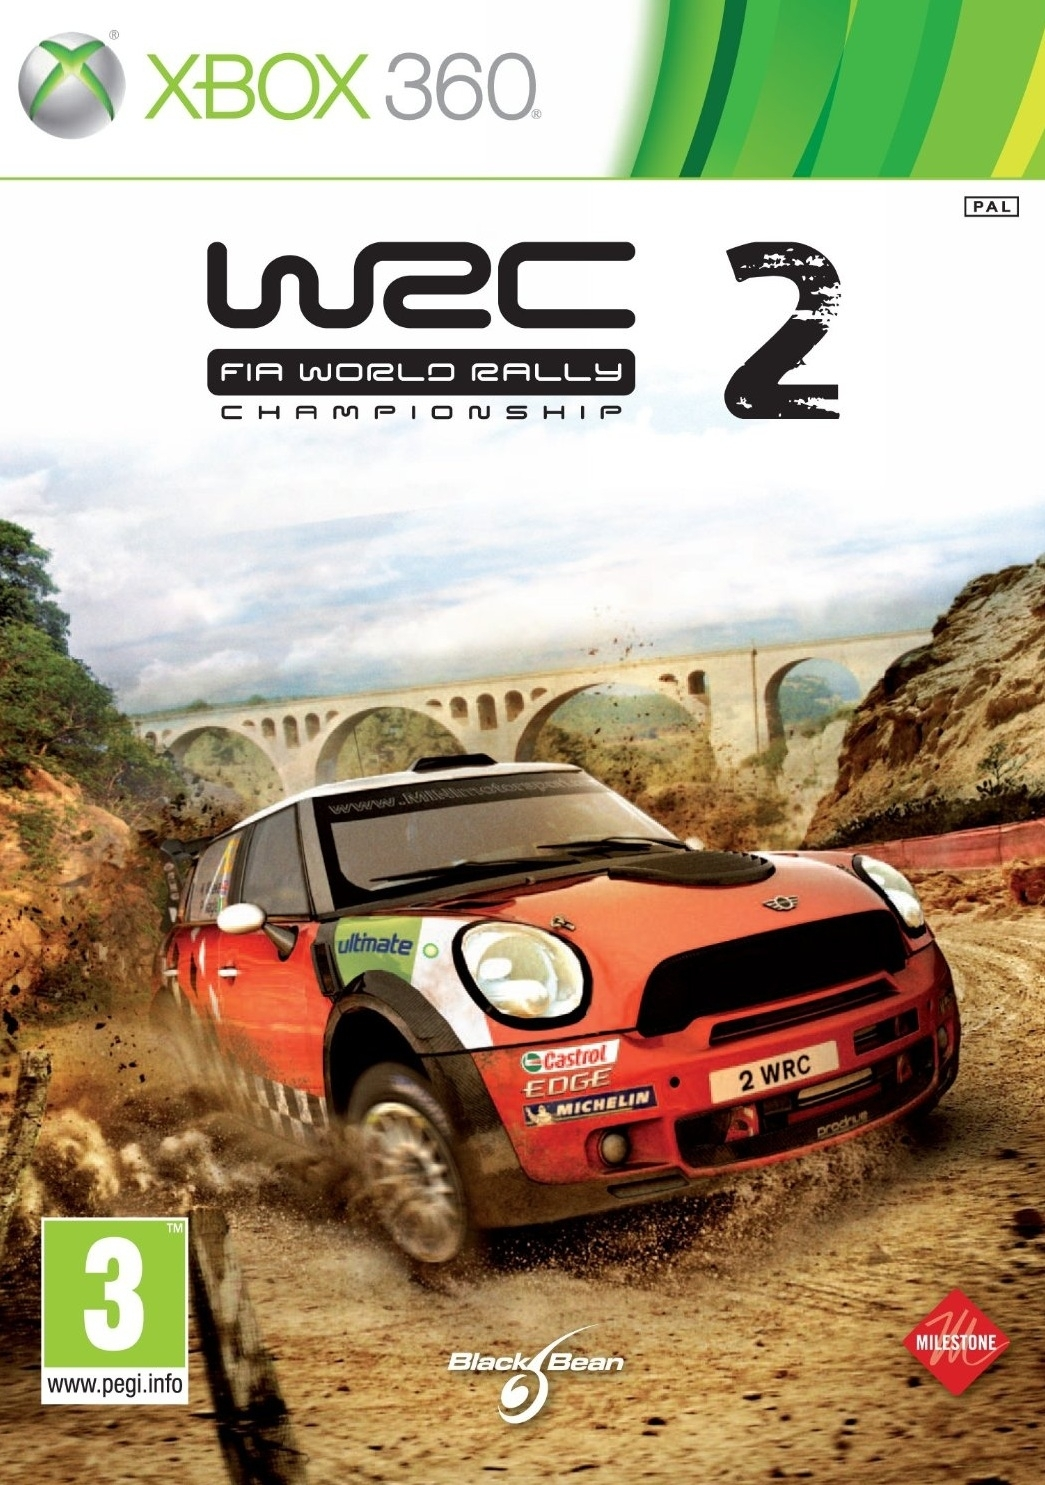 Wrc: Fia World Rally Championship 2 (Xbox 360)